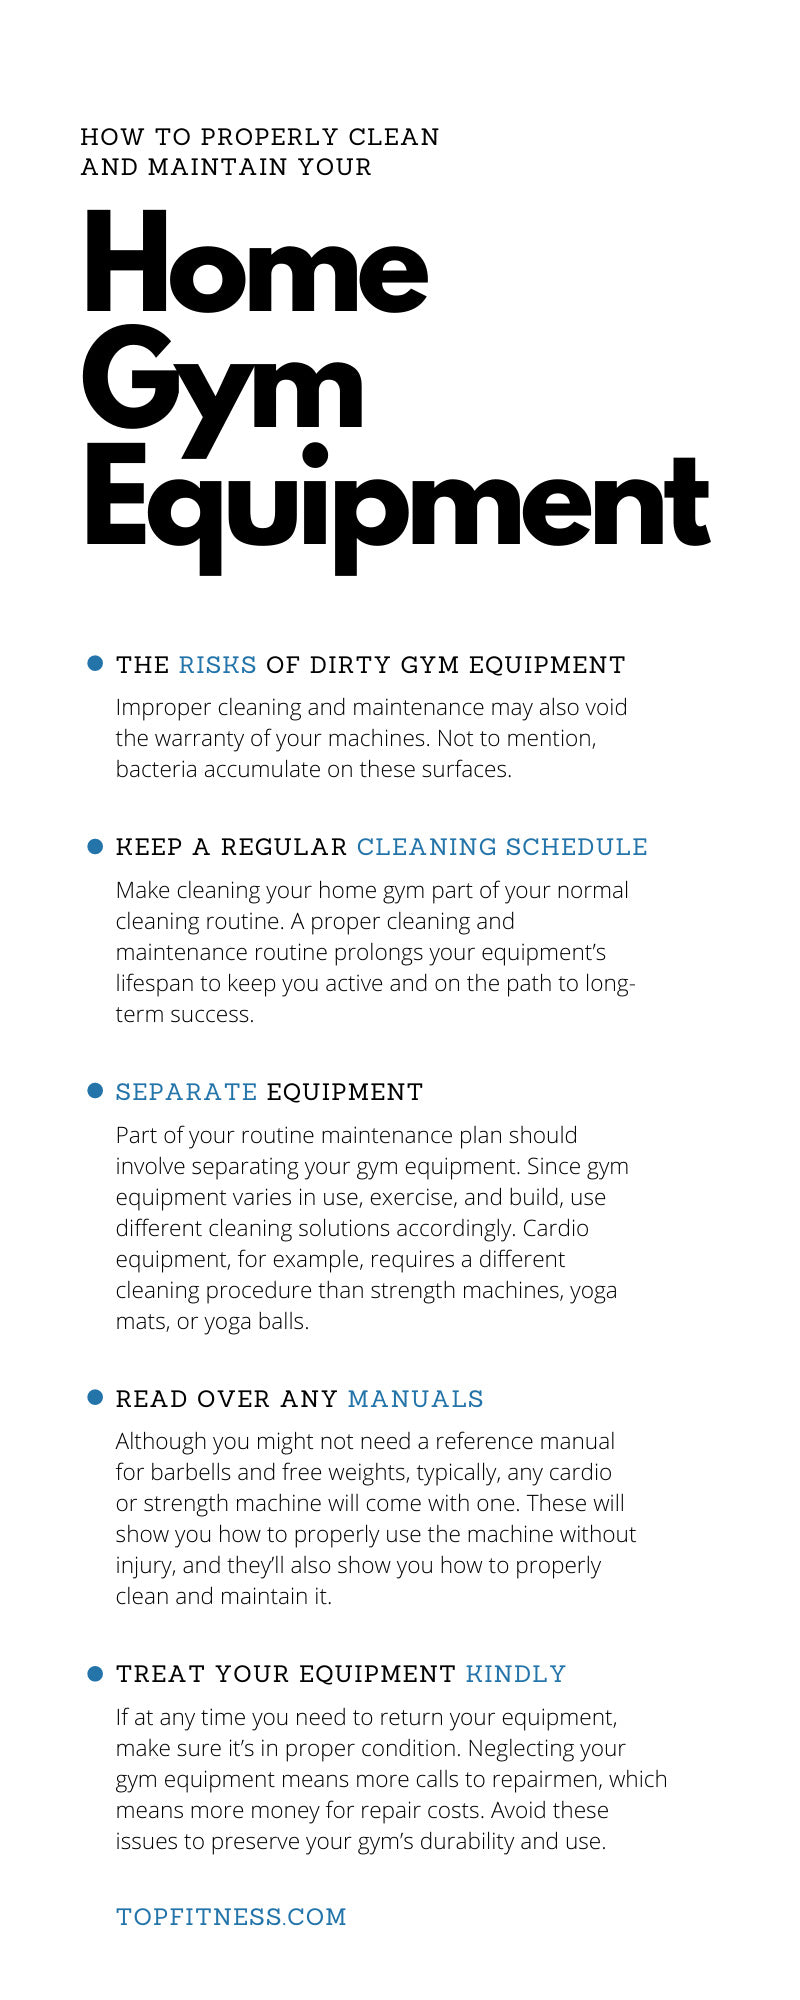 How to Properly Clean and Maintain Your Home Gym Equipment